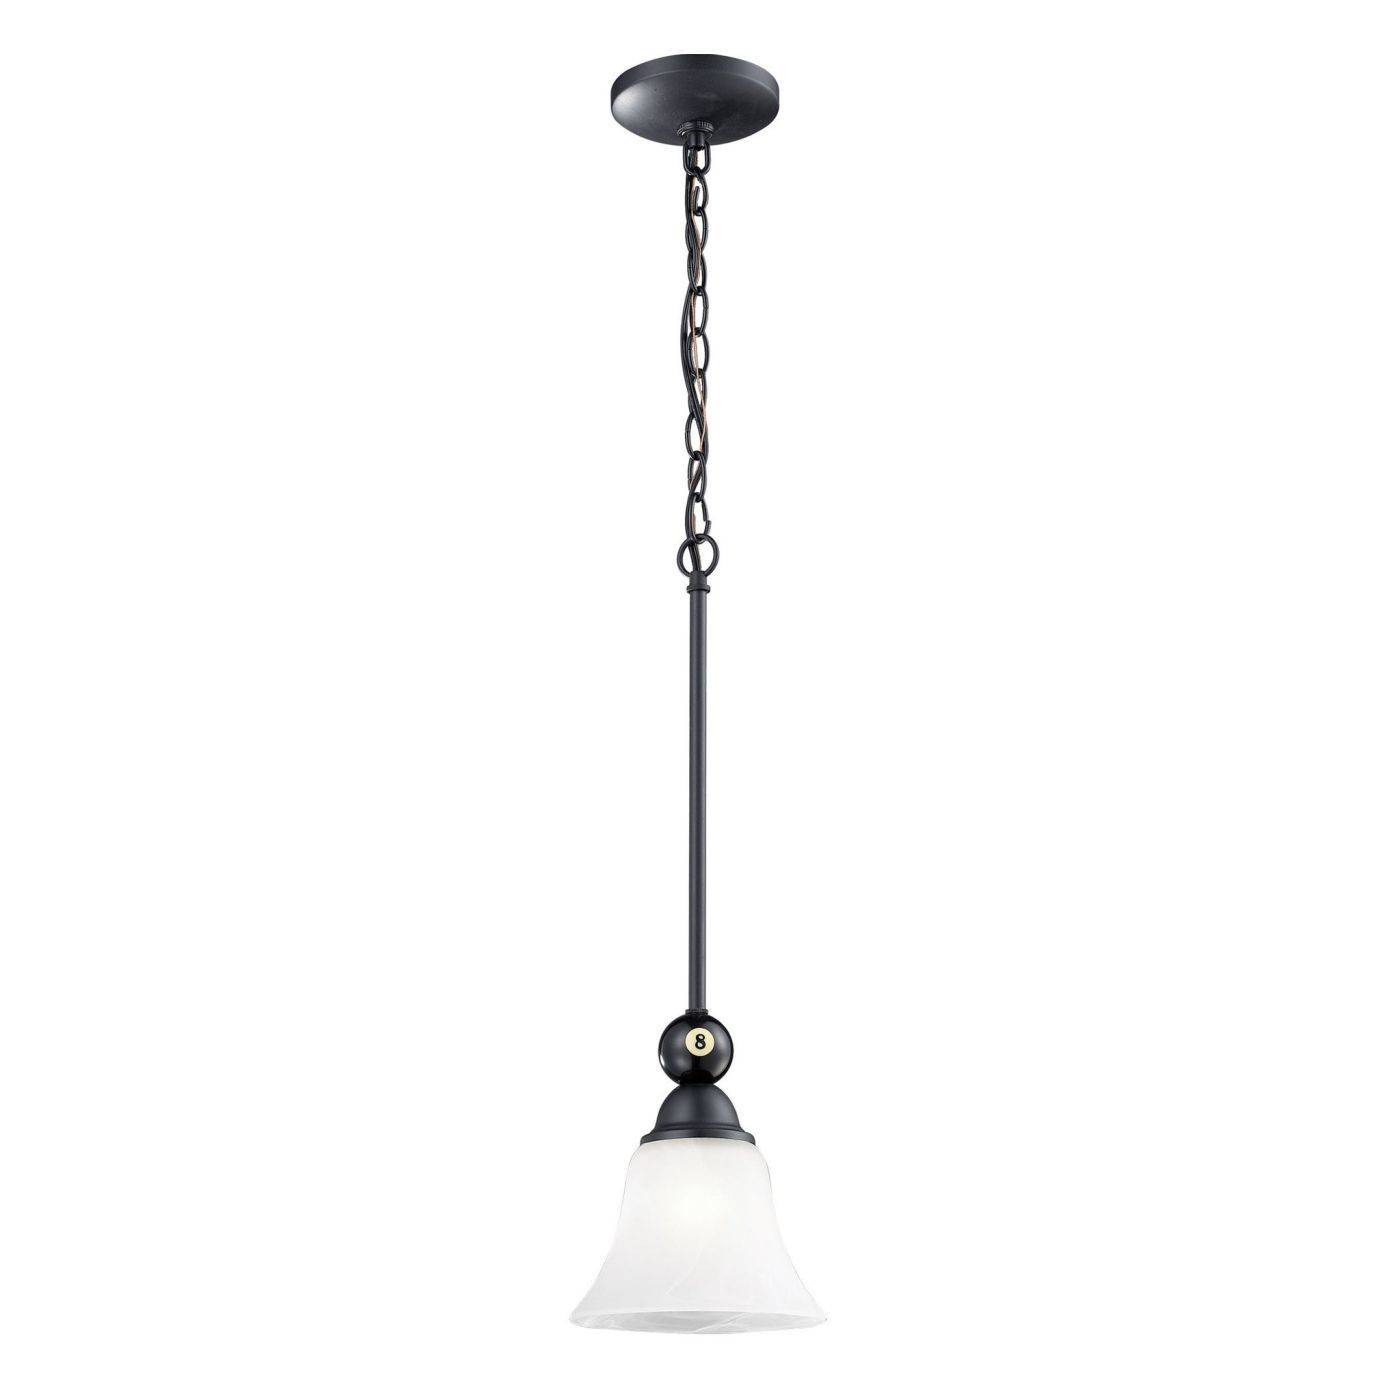 ceiling lamps elk group 1 designer classics light billiard pendant in matte black lamp 519